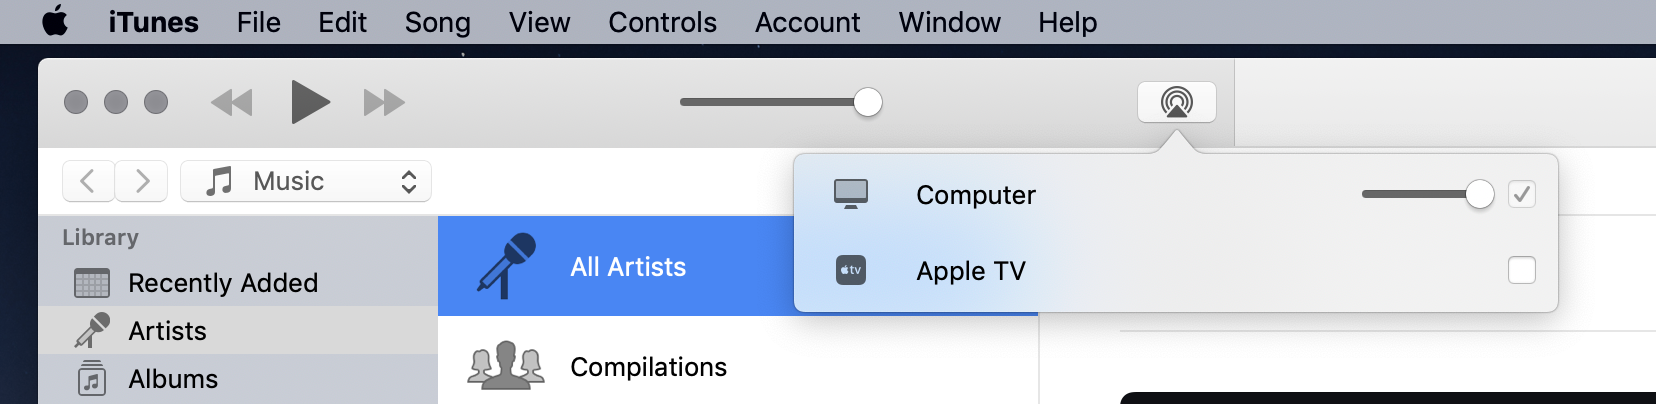 ITunes AirPlay - Apple Community